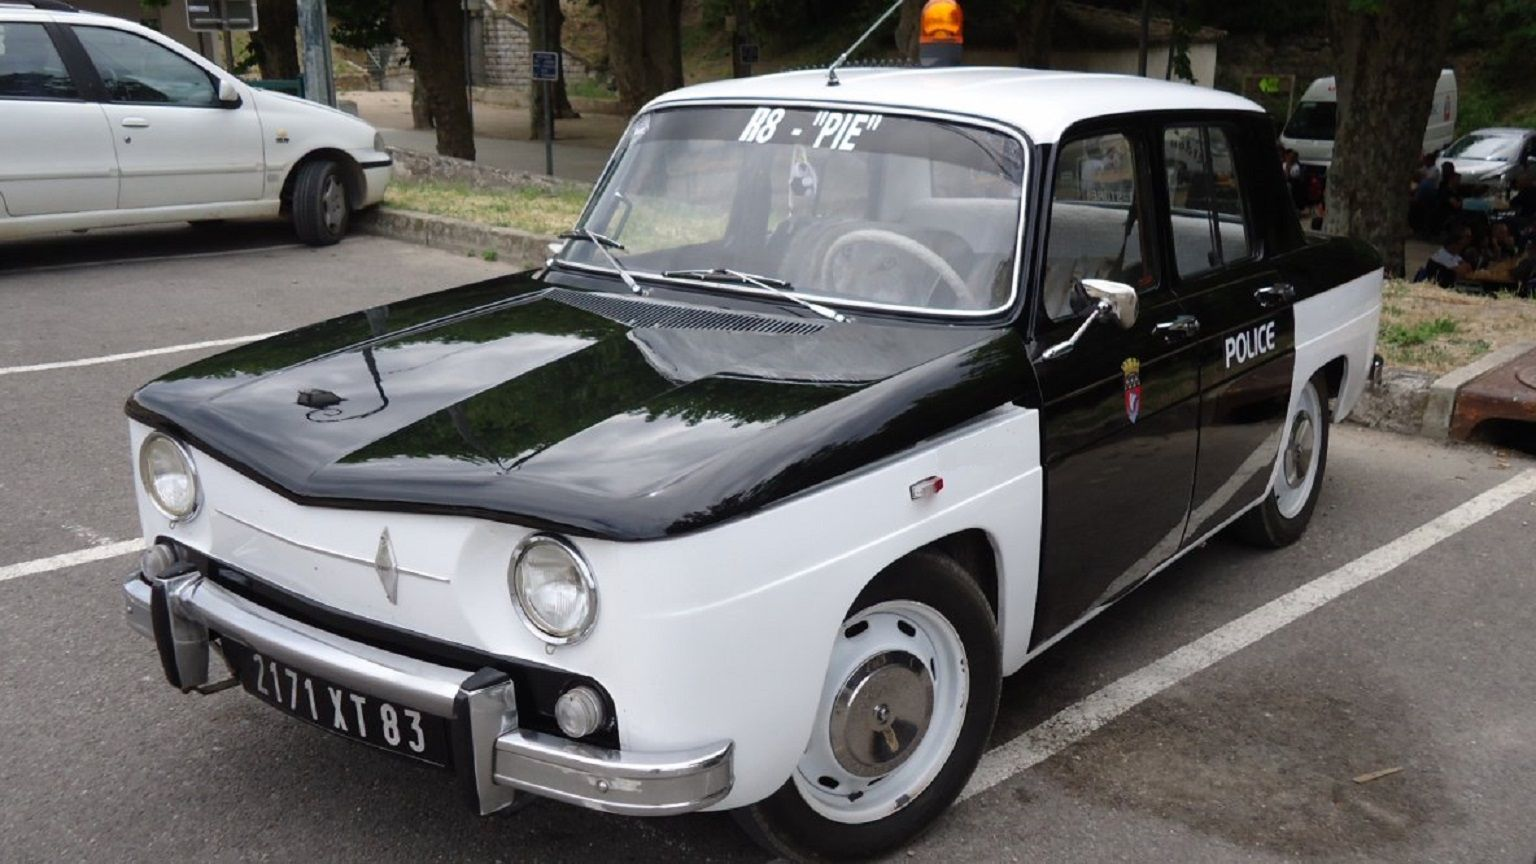 1962 Renault 8 - Préfecture de Police de Paris - Police Nationale - France